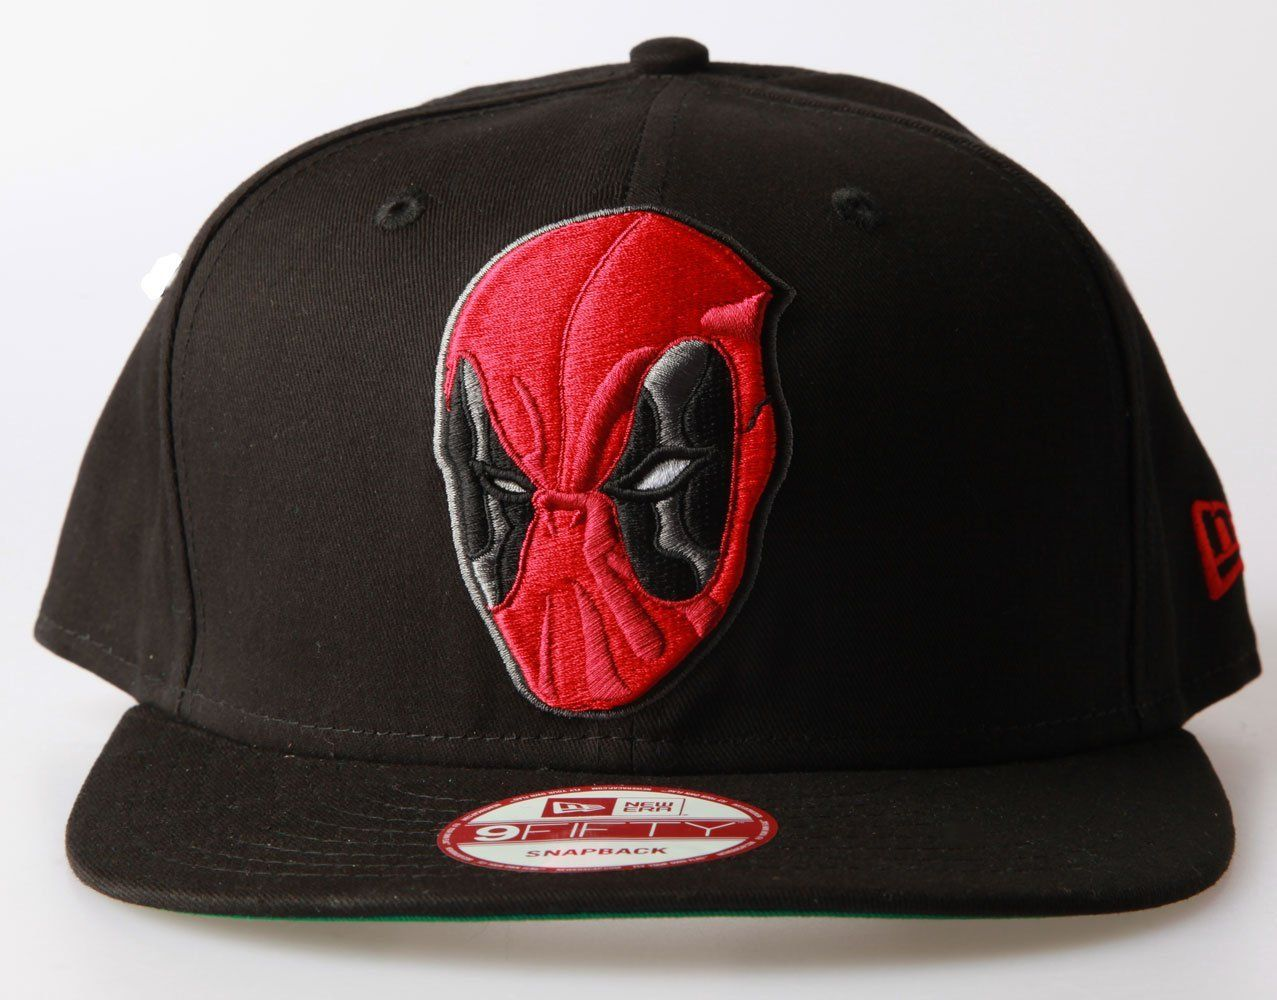 3df5d84449aed ireland amazon has listed a new era 9fifty deadpool cabesa snapback cap for  sale. new